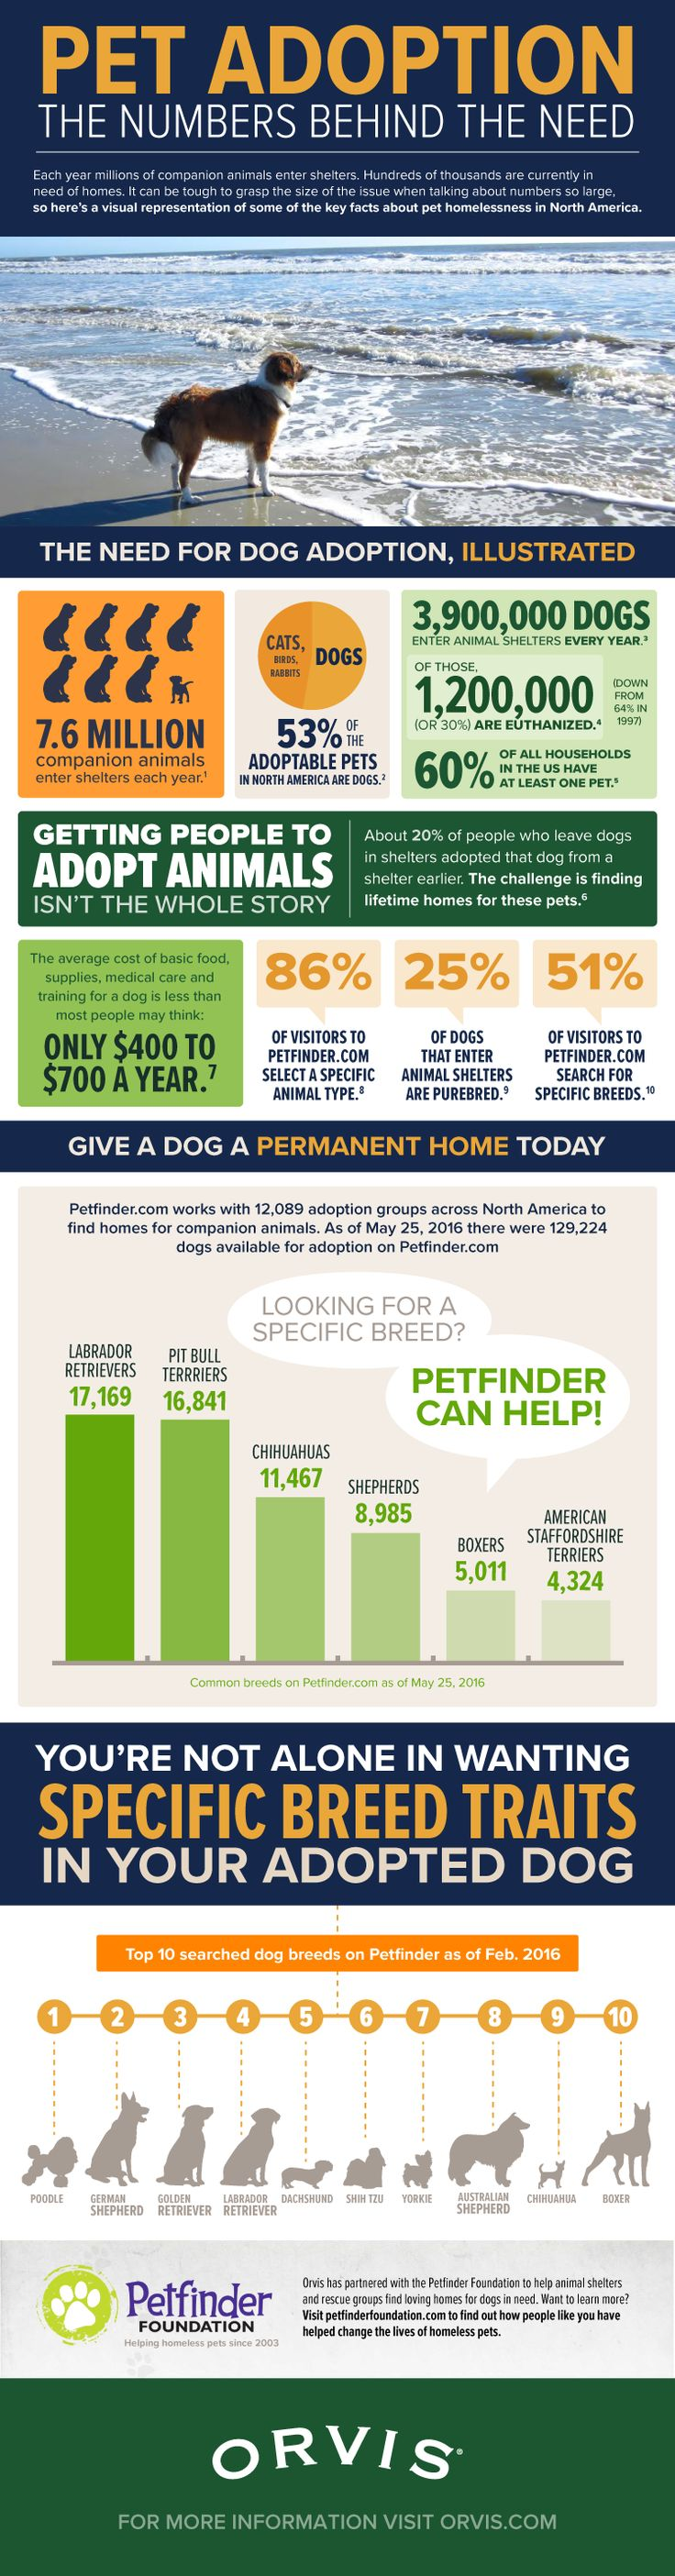 Dog Adoption: The Numbers Behind The Need (Infographic)